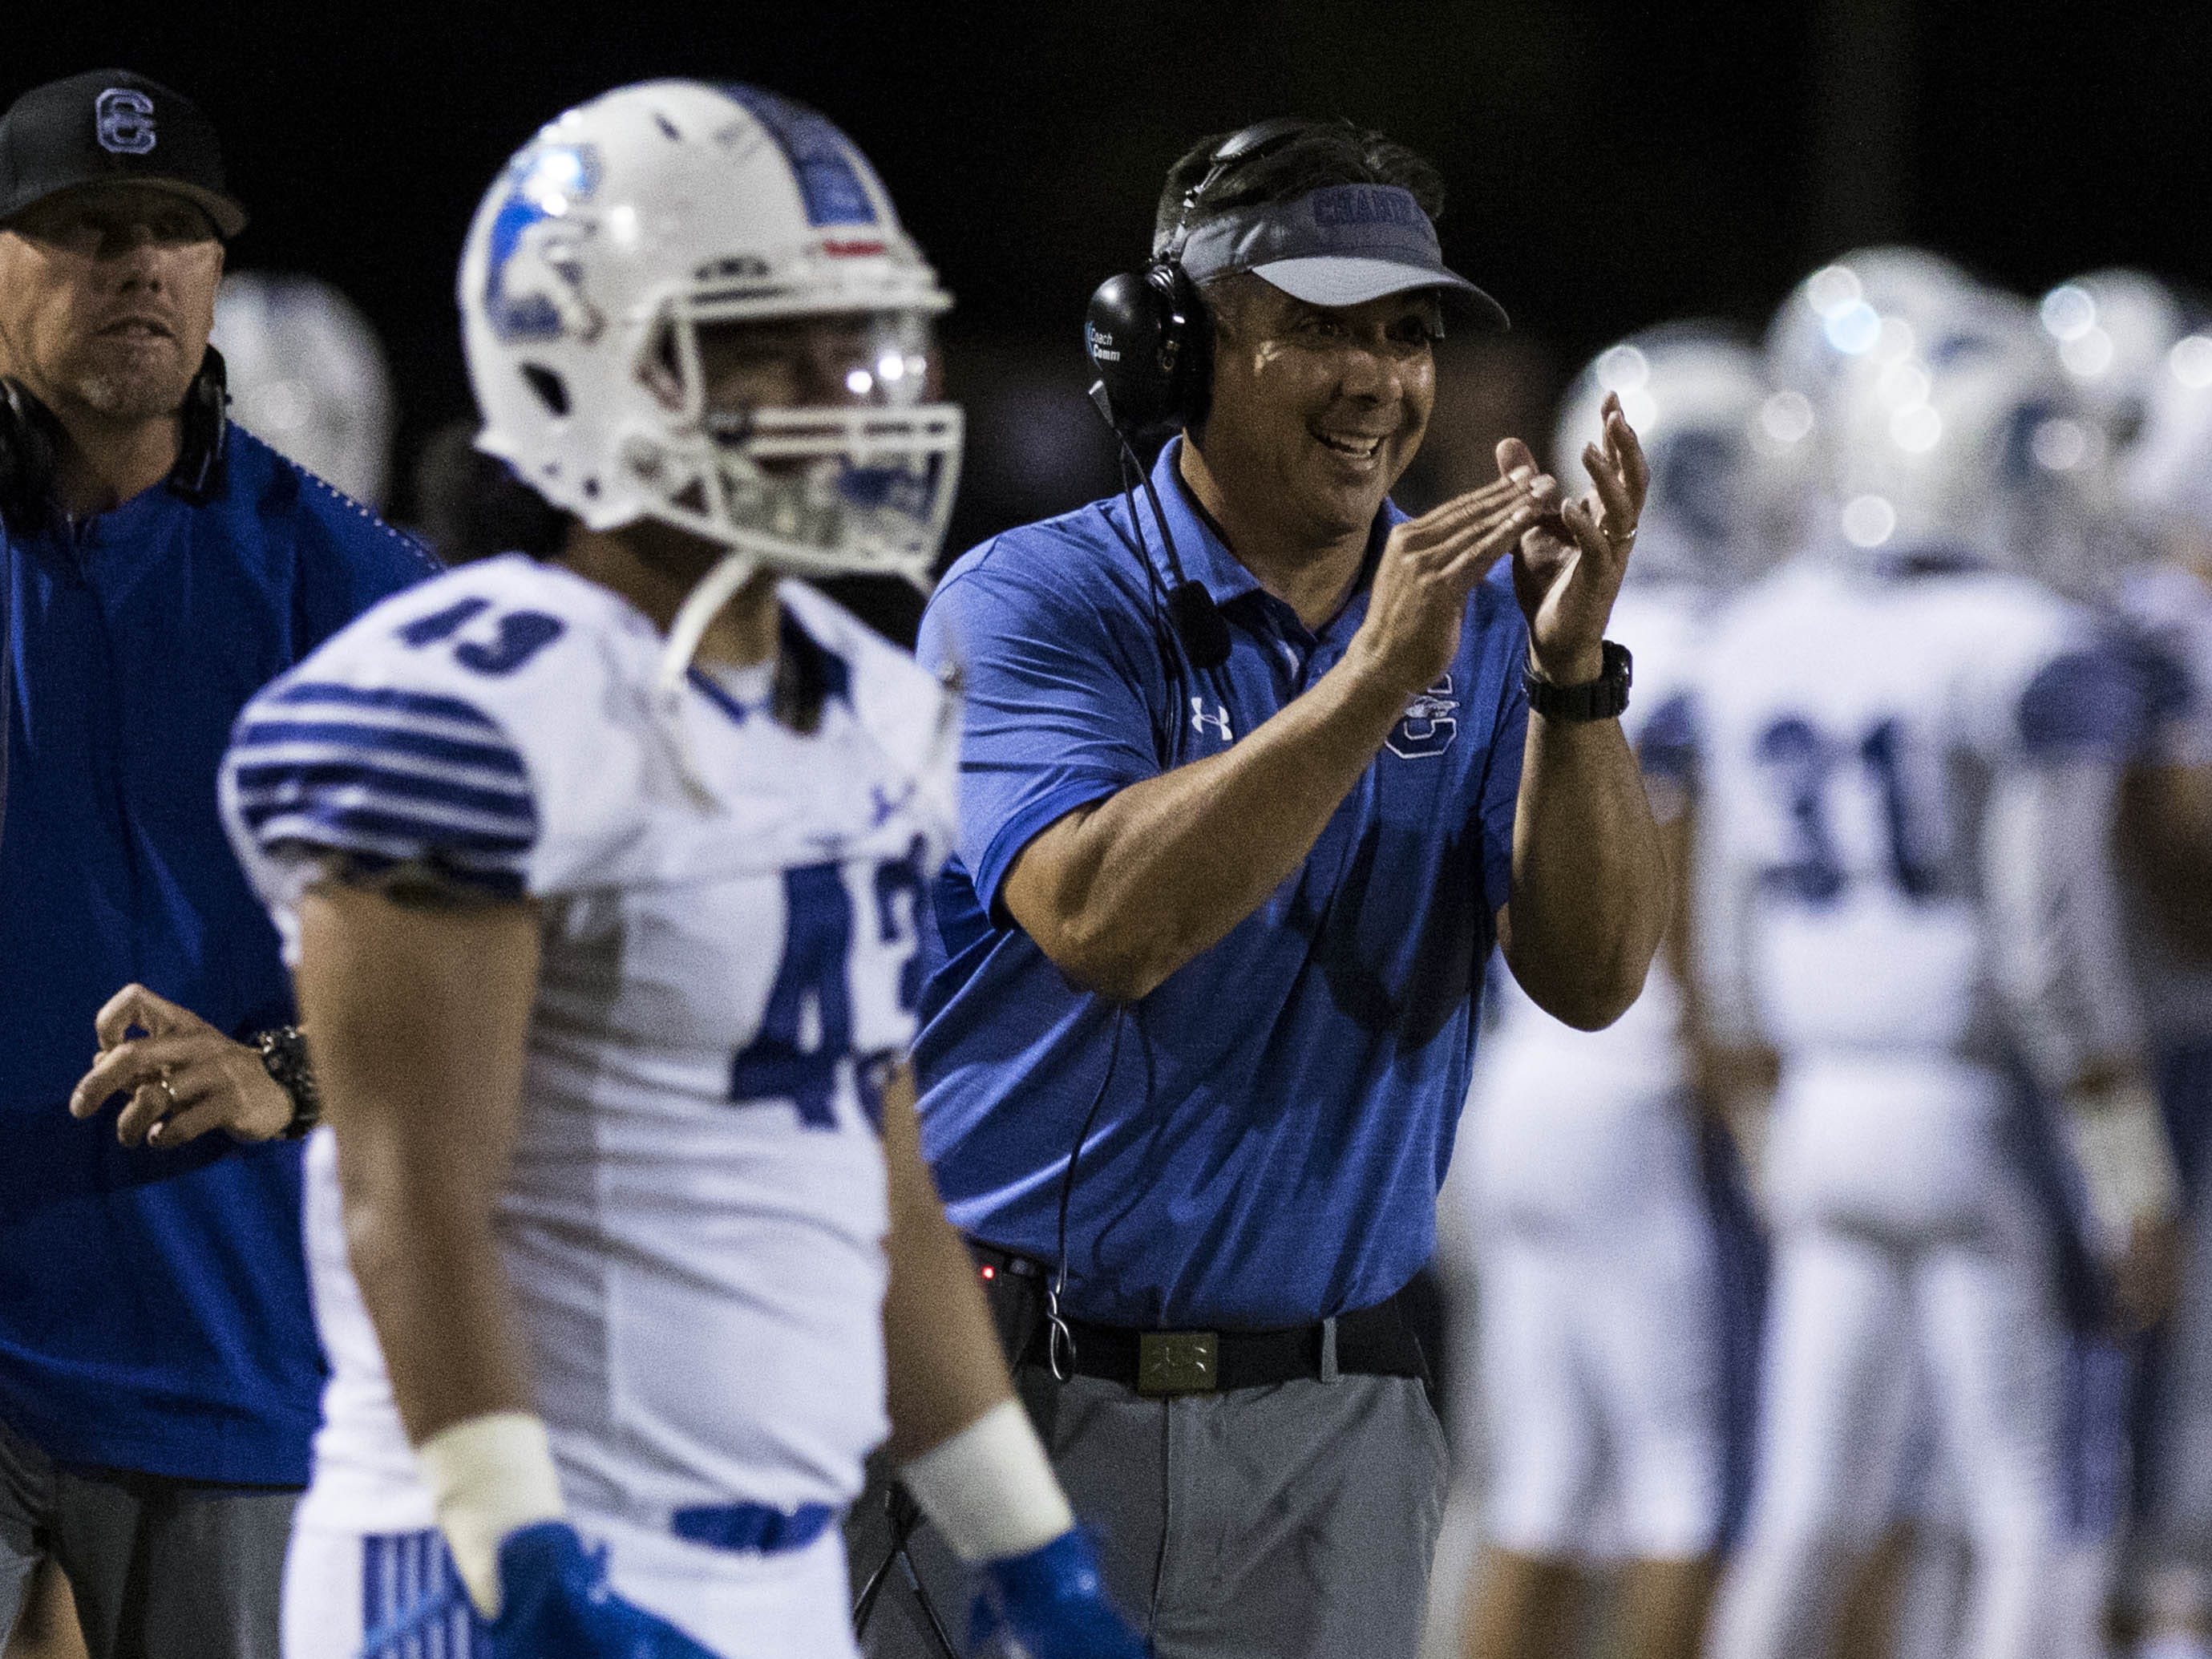 Chandler head coach Shaun AguanoÊclaps as his team goes up 21-0 against Hamilton's during their game in Chandler, Friday, Oct. 26, 2018. #azhsfb